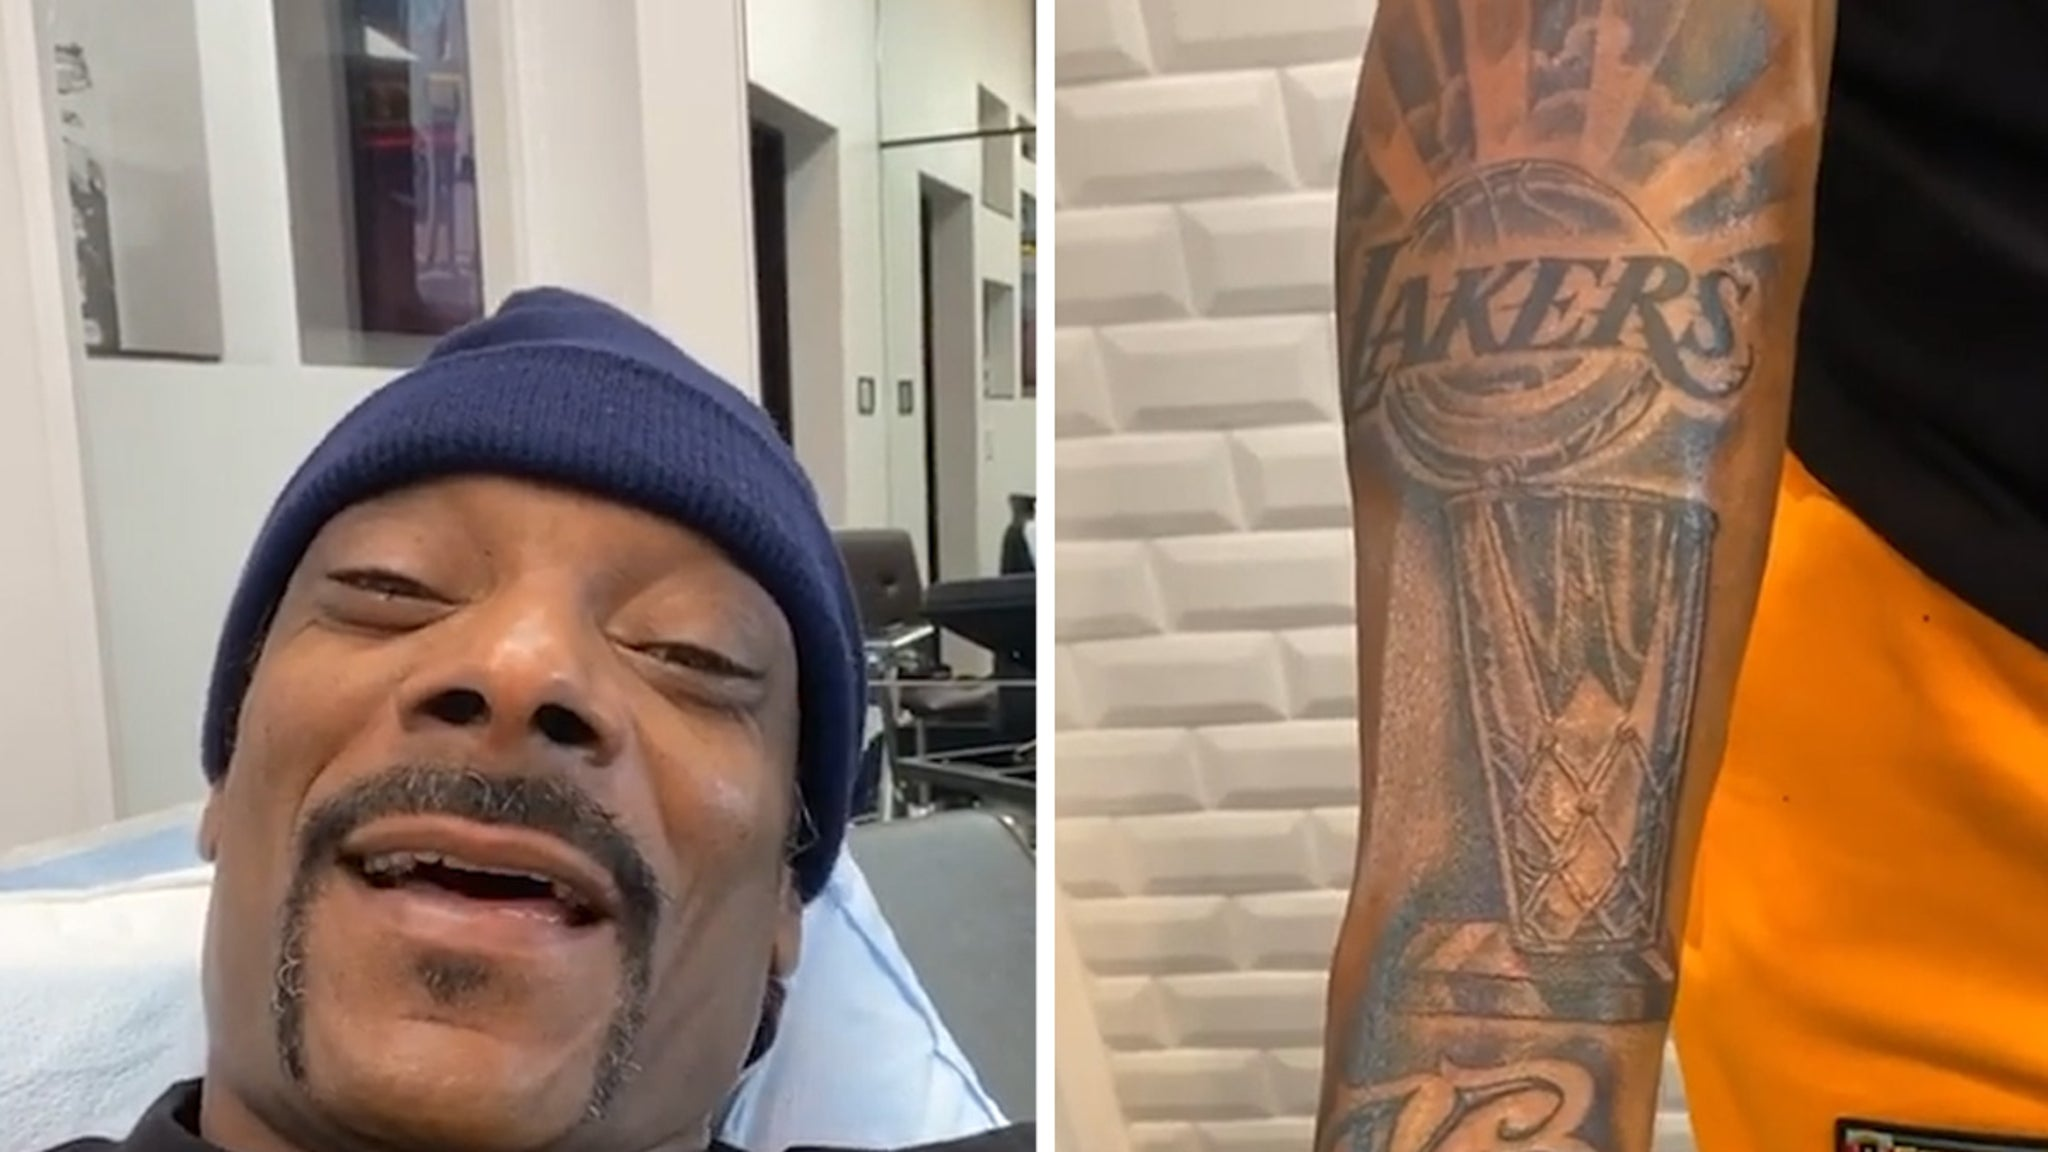 Snoop Dogg New Lakers Championship Tattoo ... with Kobe Tribute